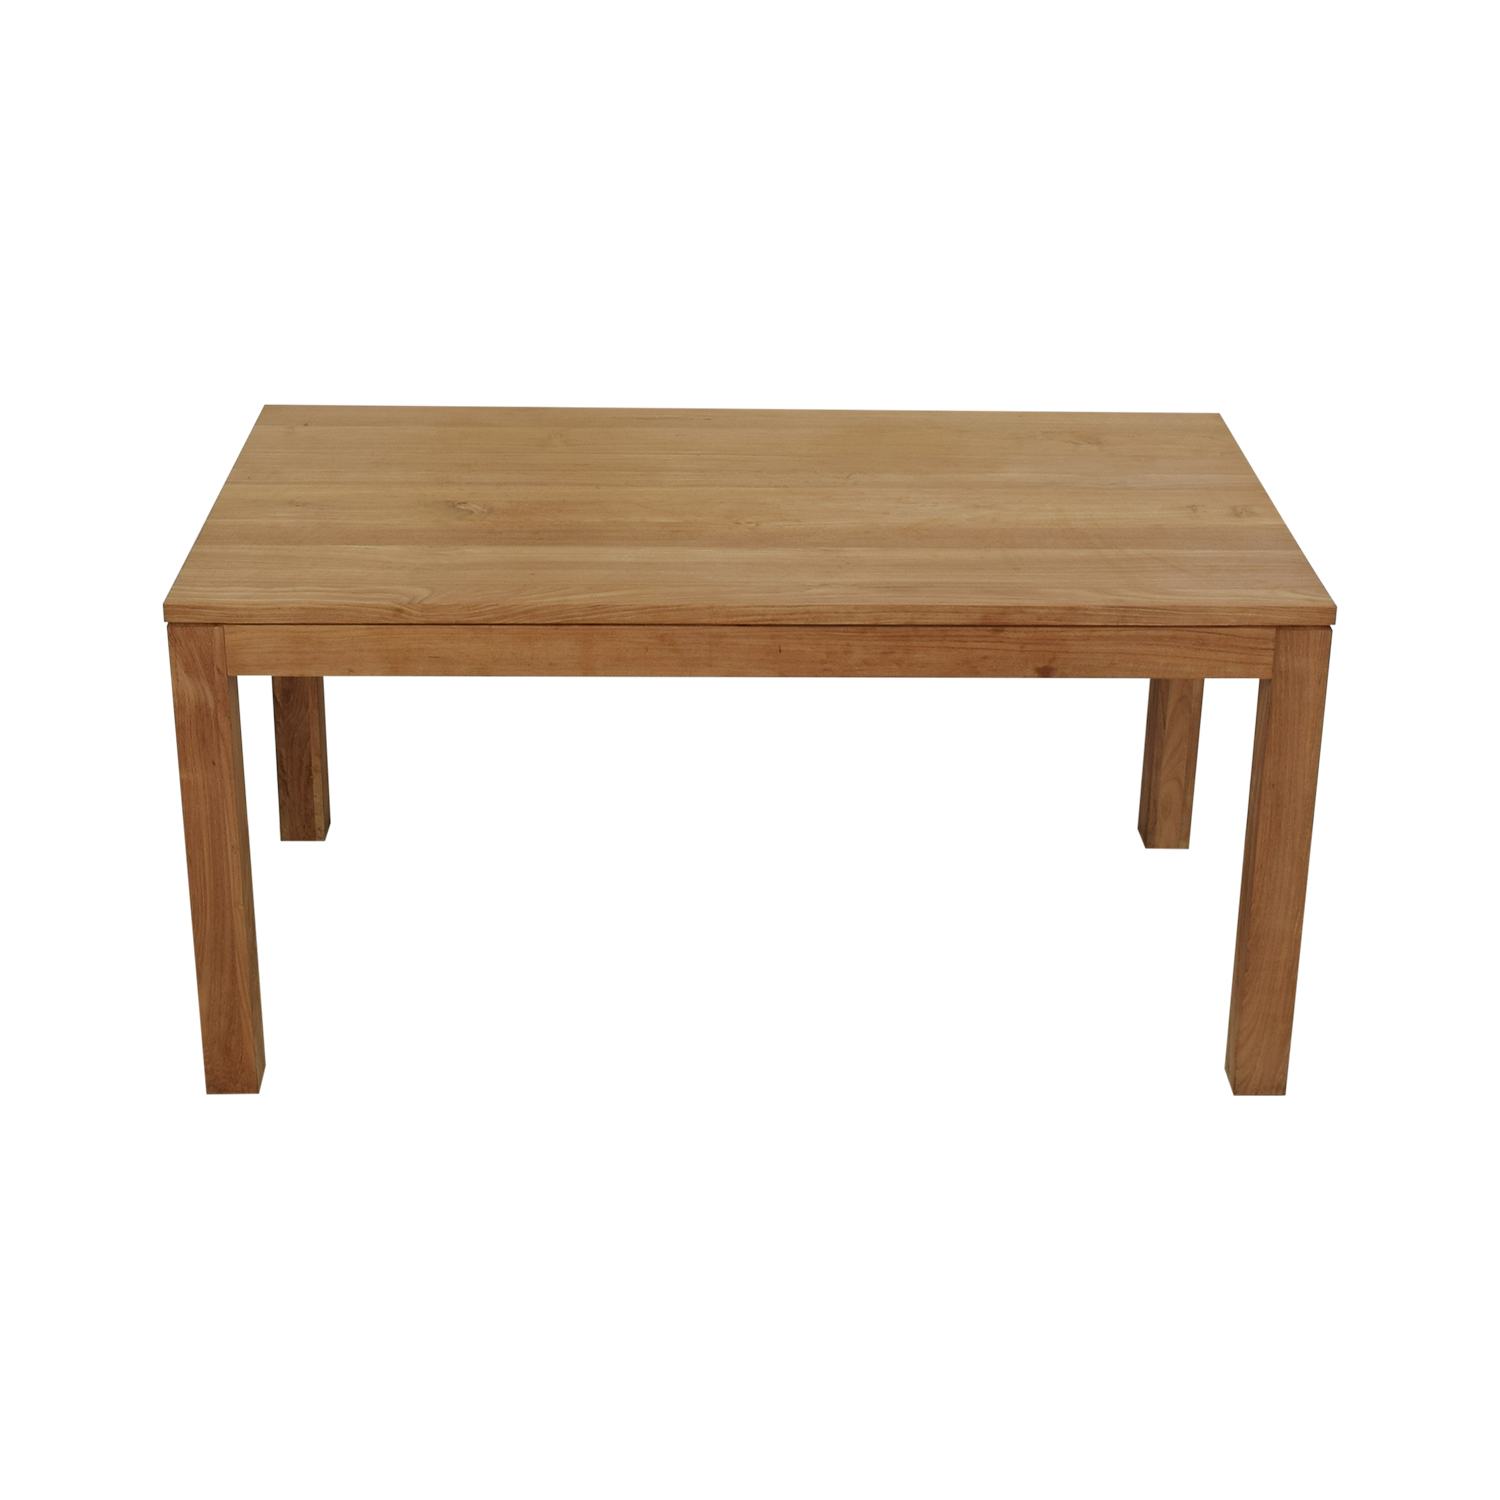 Ethnicraft Wood Dining Table Ethnicraft